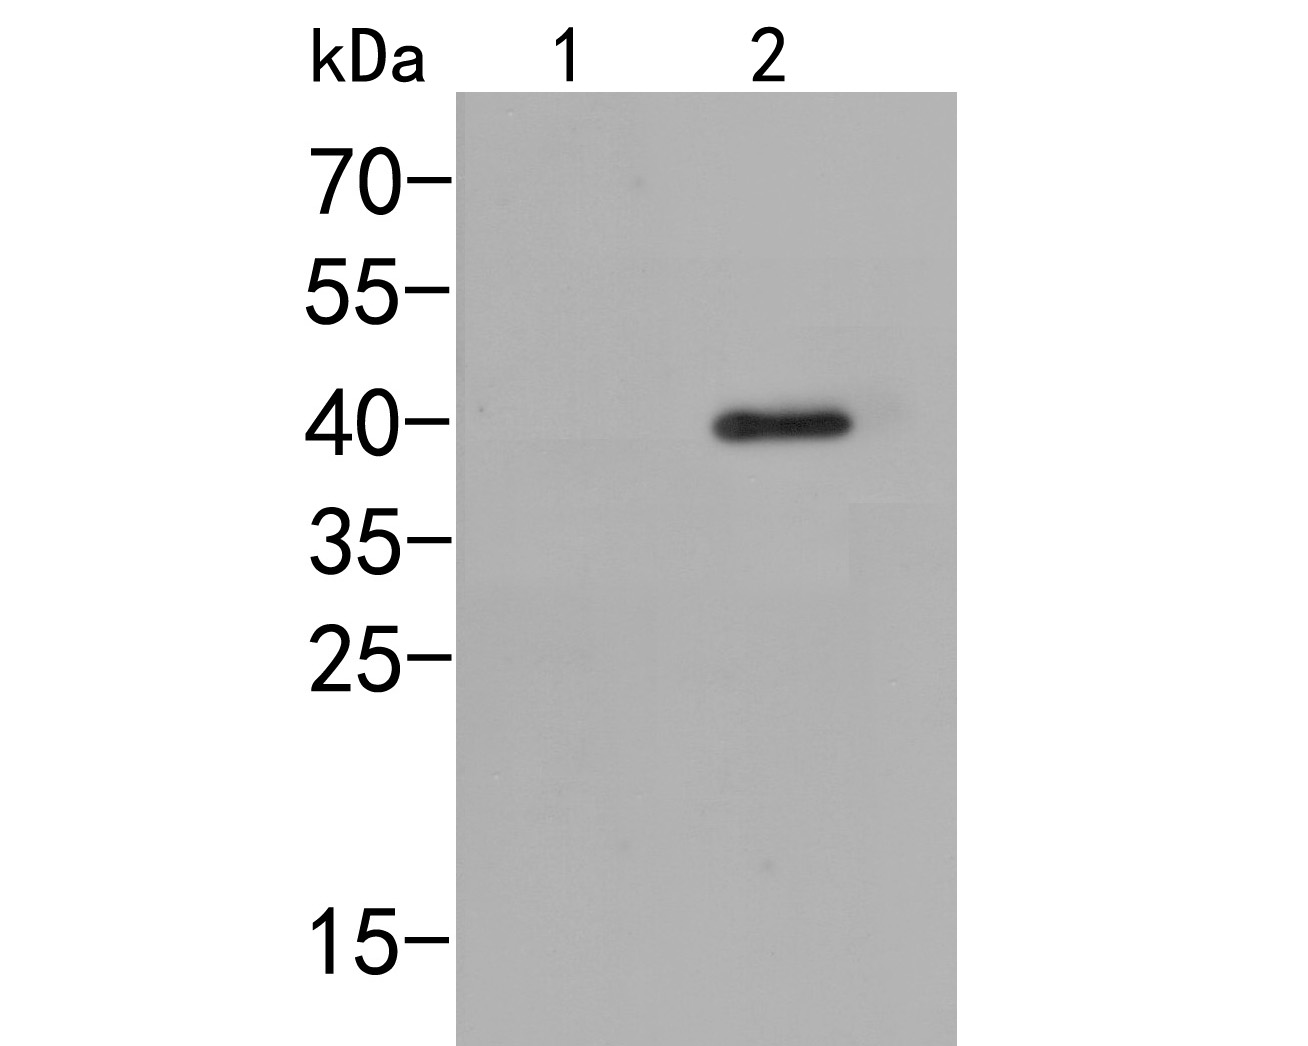 Western blot analysis of p38  (phospho T180) on different lysates. Proteins were transferred to a PVDF membrane and blocked with 5% BSA in PBS for 1 hour at room temperature. The primary antibody (ER2001-51, 1/500) was used in 5% BSA at room temperature for 2 hours. Goat Anti-Rabbit IgG - HRP Secondary Antibody (HA1001) at 1:5,000 dilution was used for 1 hour at room temperature.<br /> Positive control: <br /> Lane 1: A431 cell lysate, untreated with UV<br /> Lane 2: A431 cell lysate, treated with UV for 40 minutes